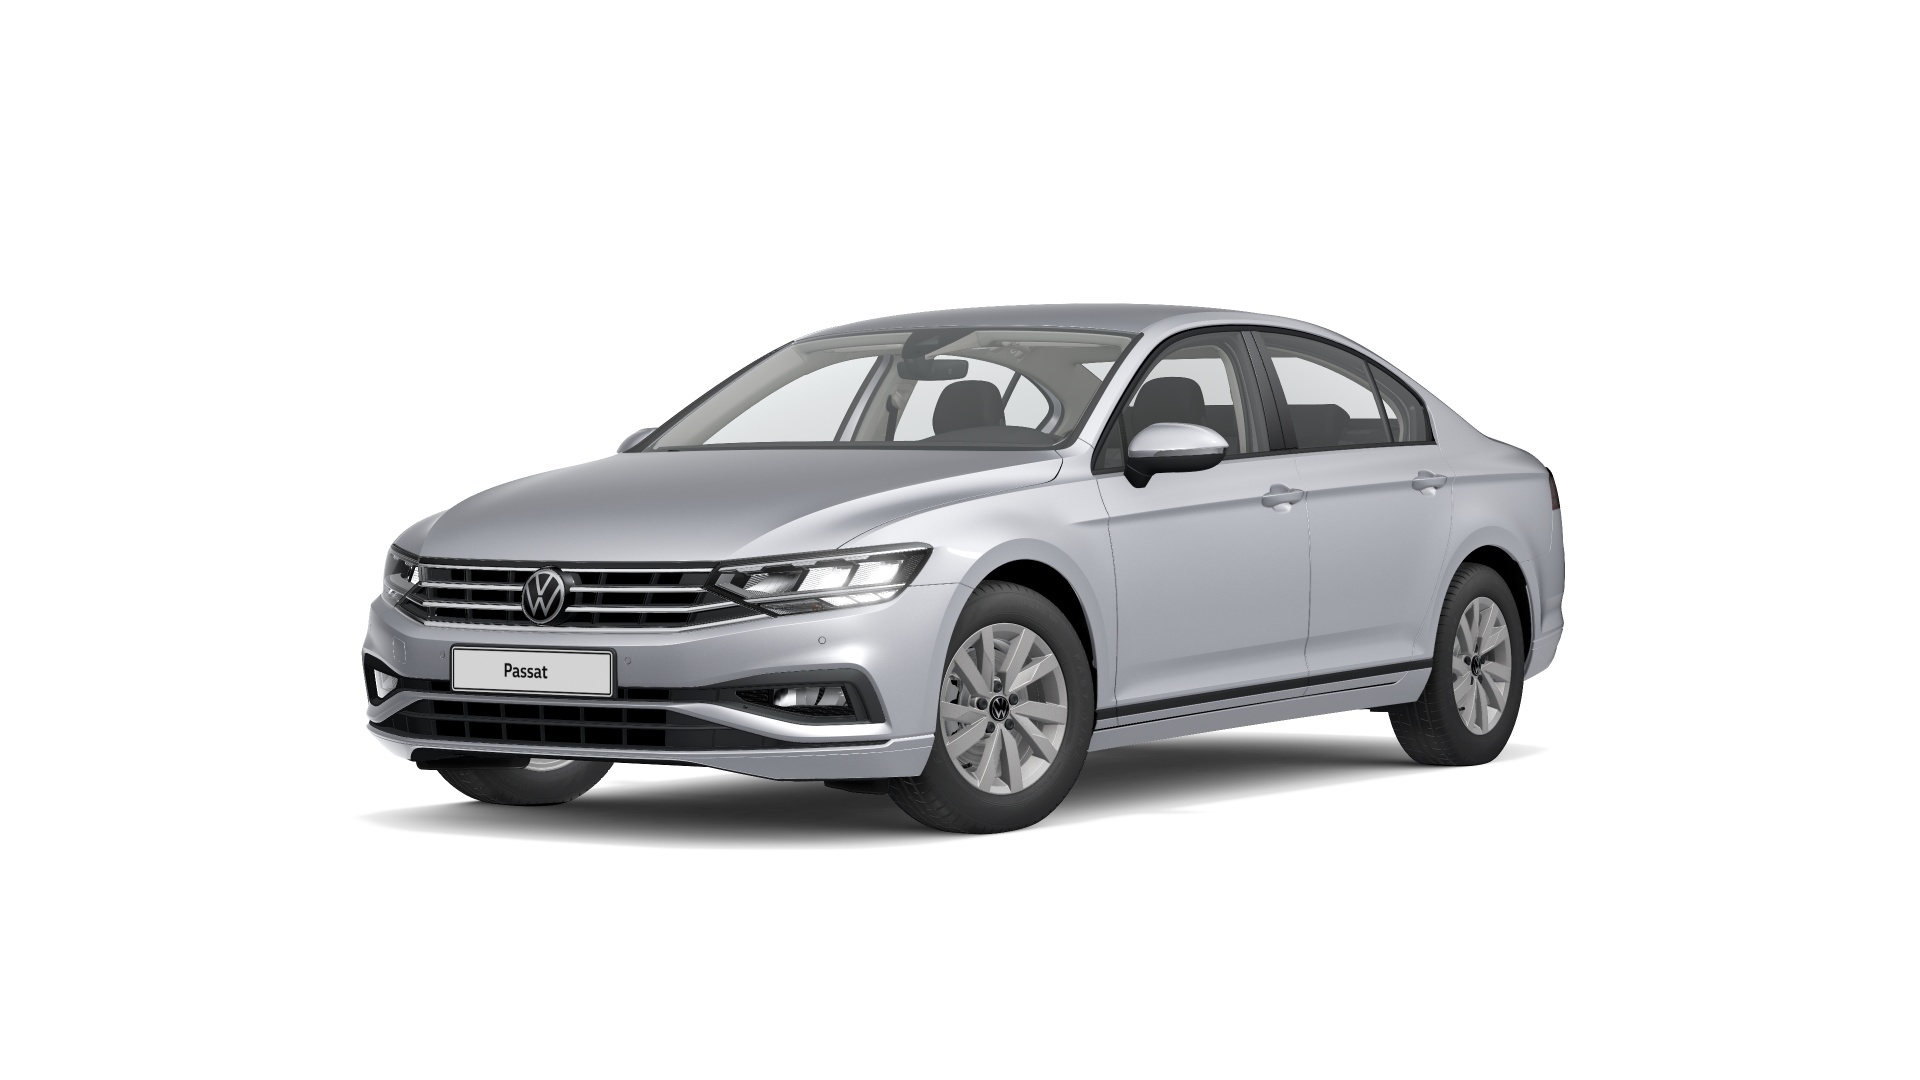 Noul Passat Advance 2.0 TDI DSG / 150 CP/110 kW / 2.0l / Direct Shift Gearbox / 4-usi : Volkswagen Passat Advance